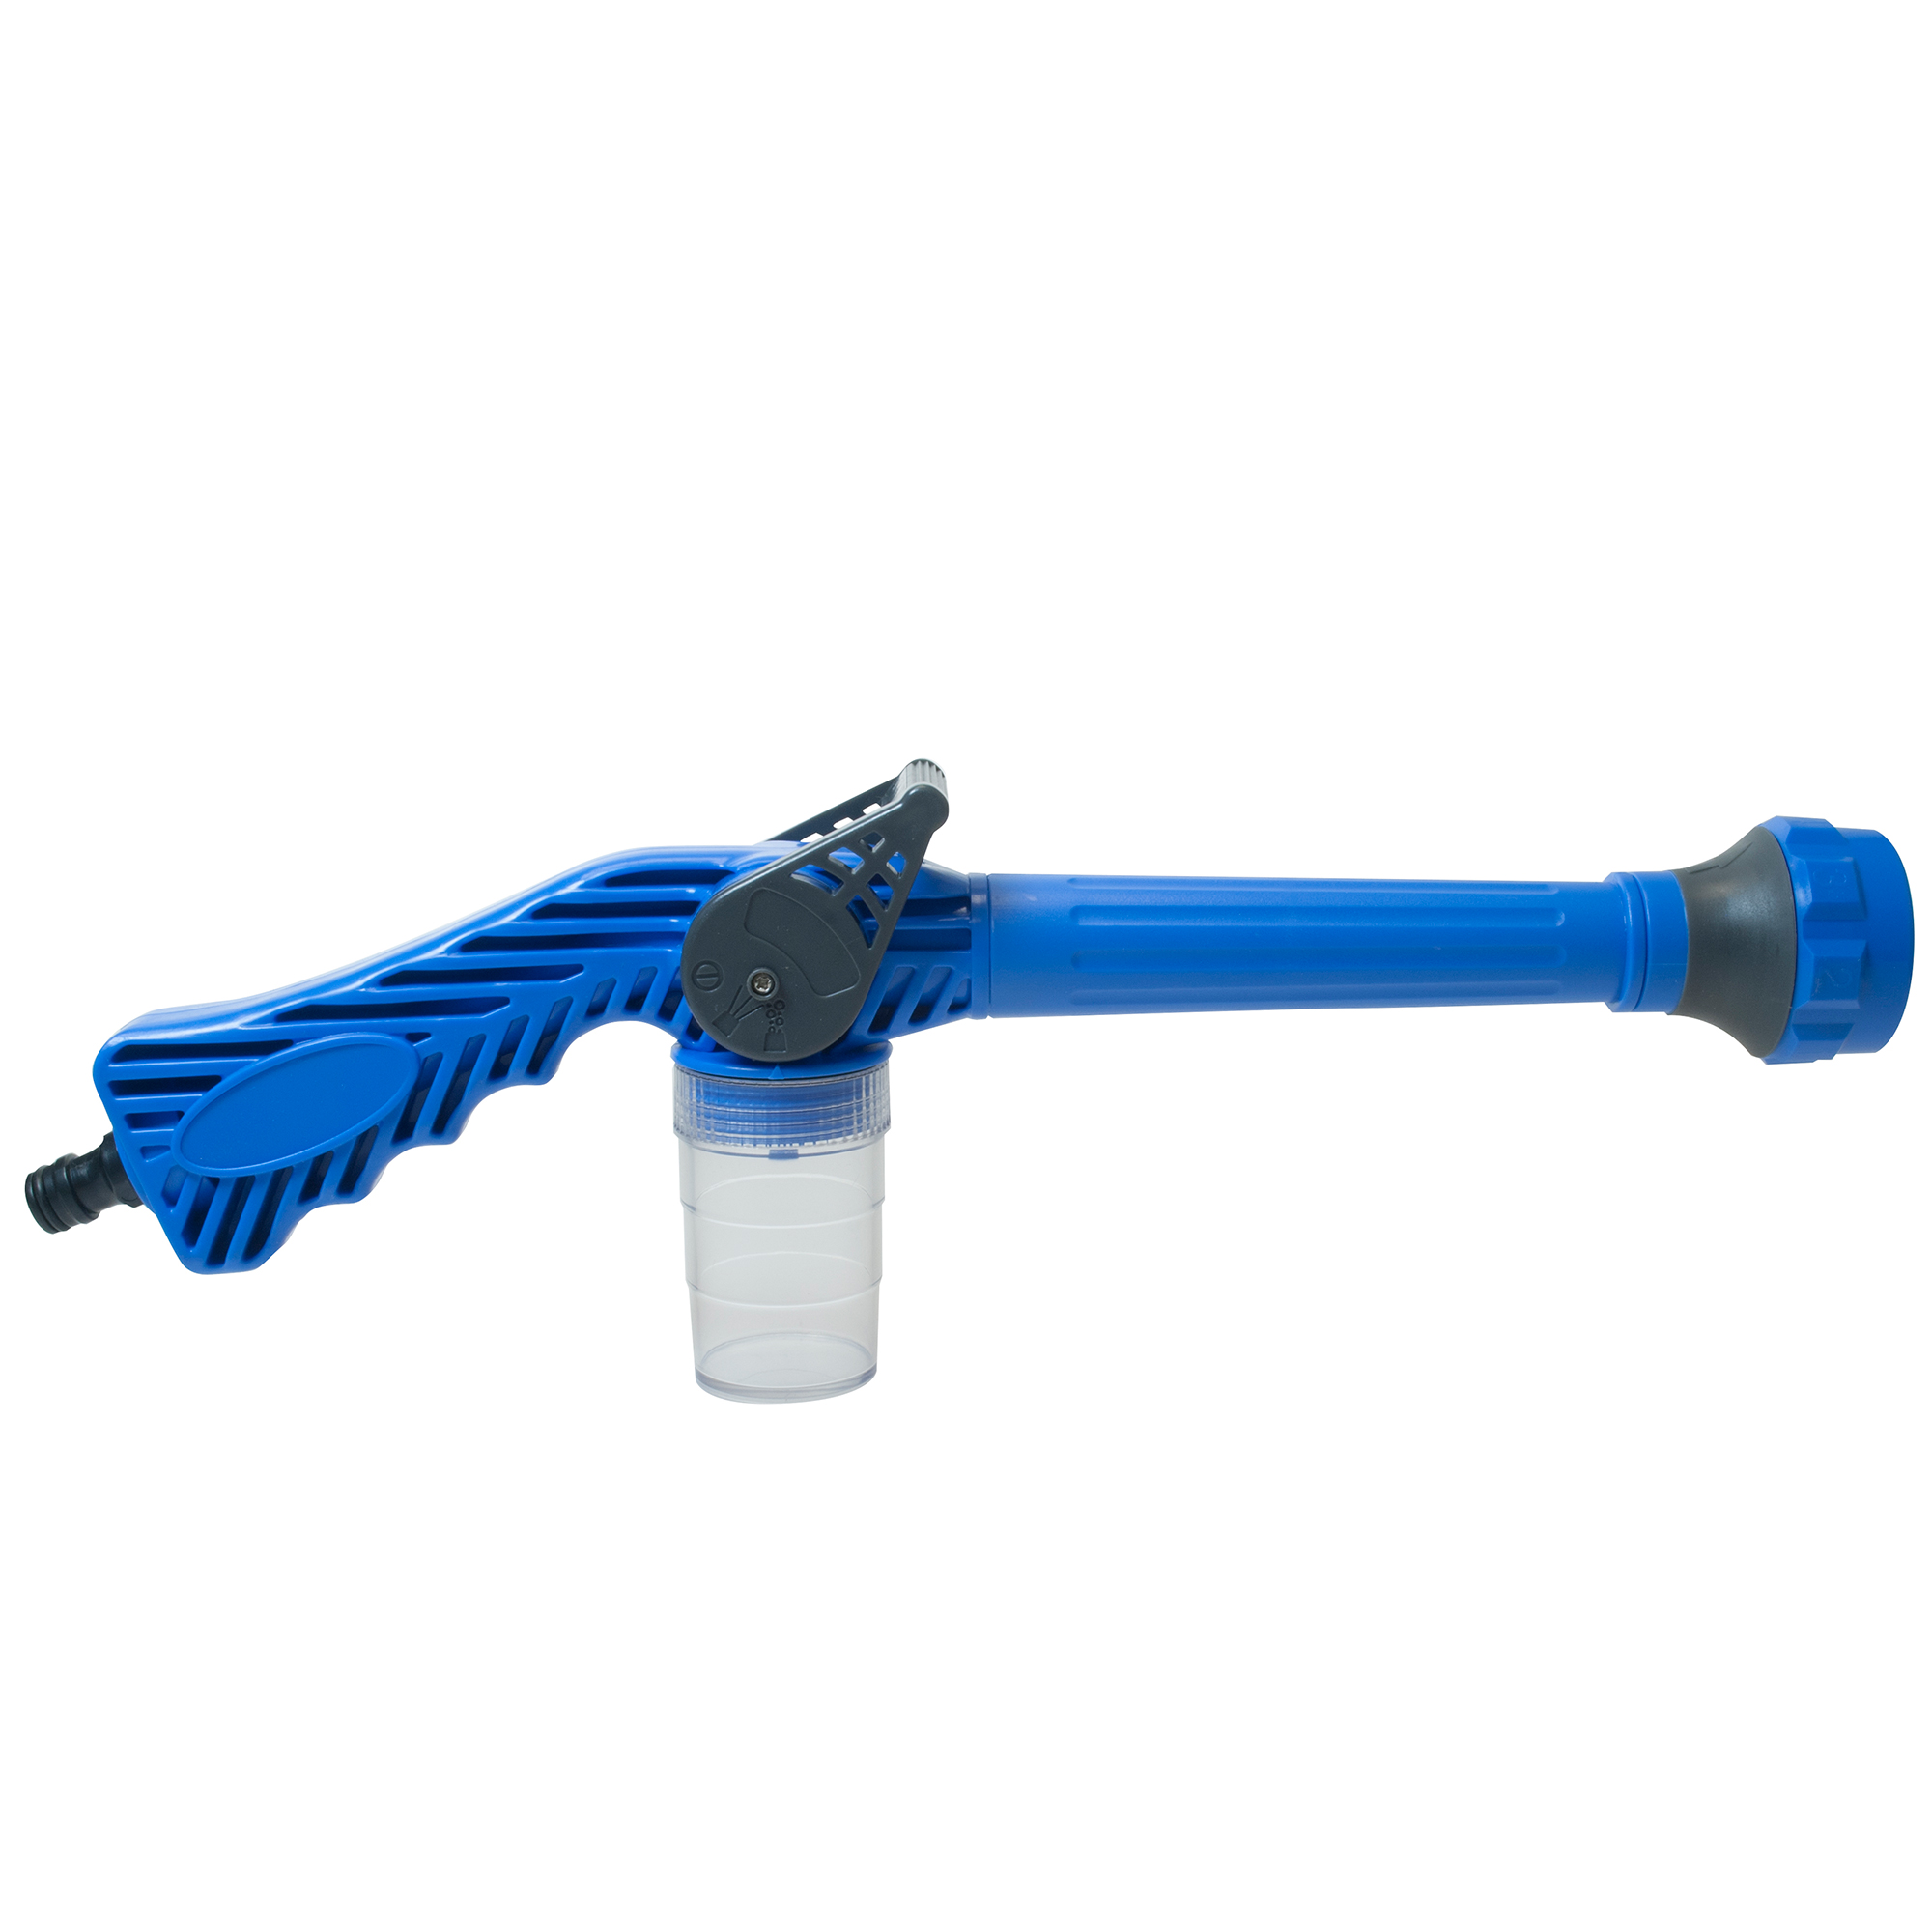 Hose Spray Nozzle Gun 8 Settings Multi Function Plant Watering Car Cleaning Ebay